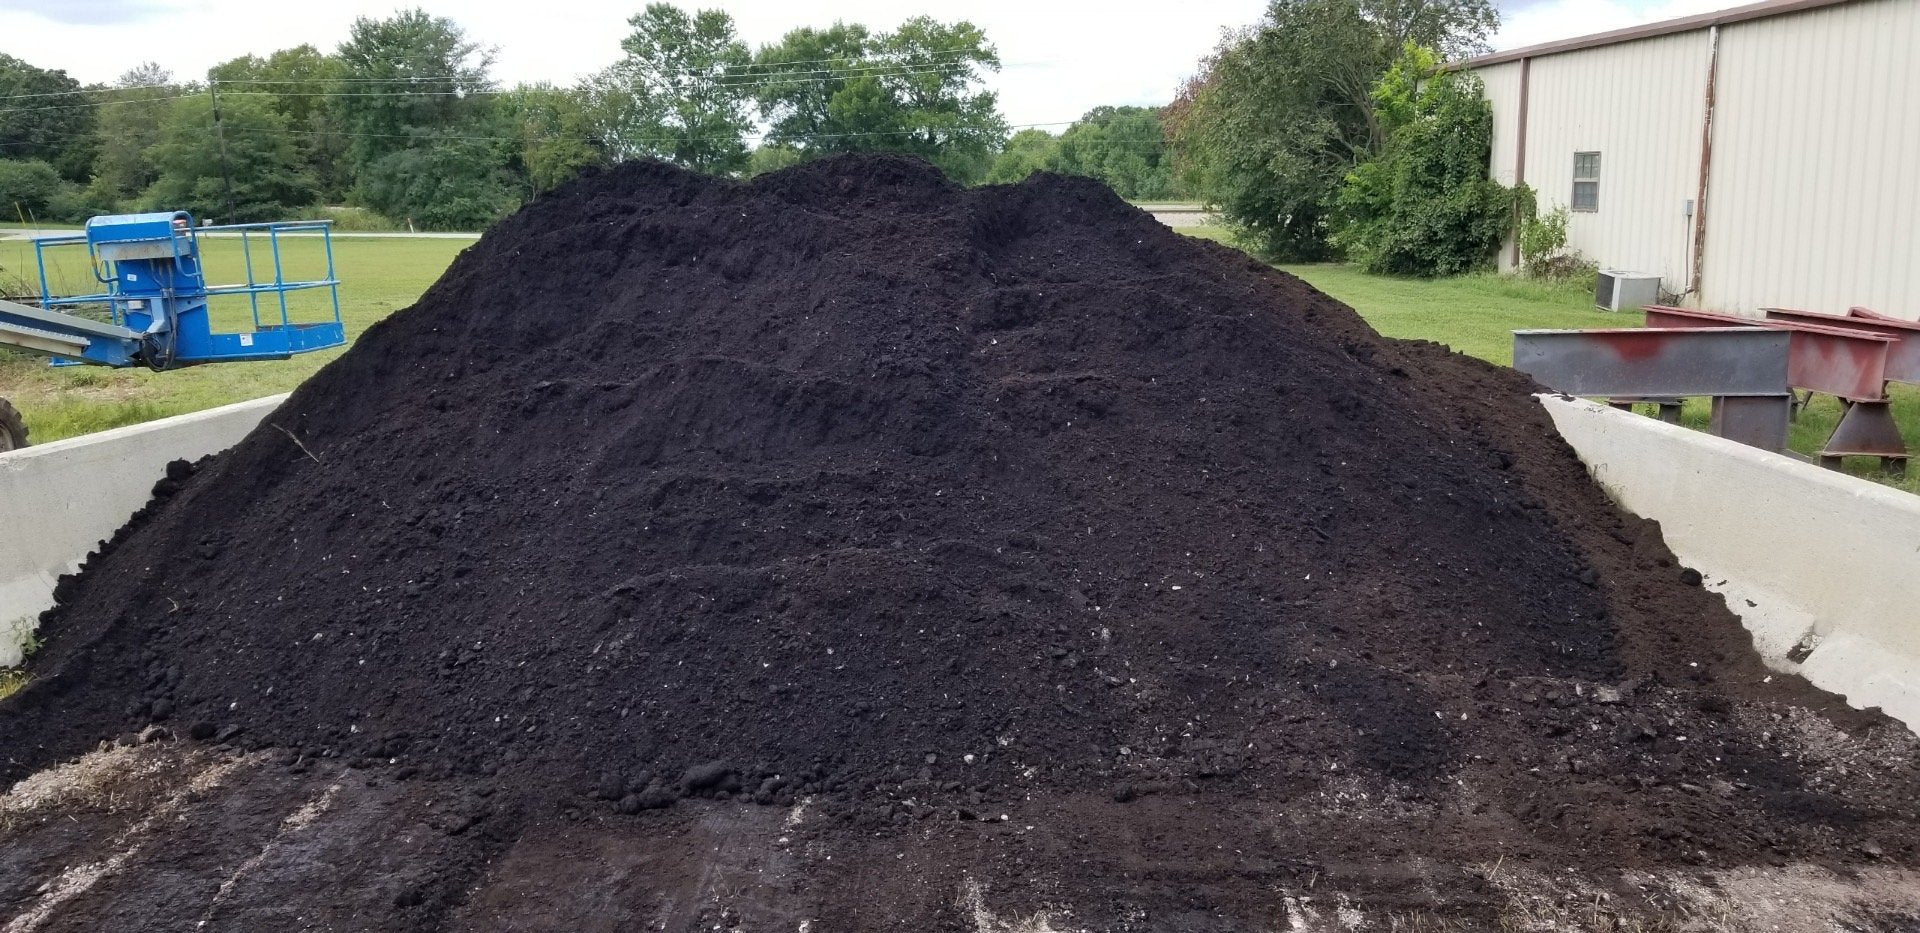 1.5 Yard Scoop - Food Waste Compost - Residential Rate